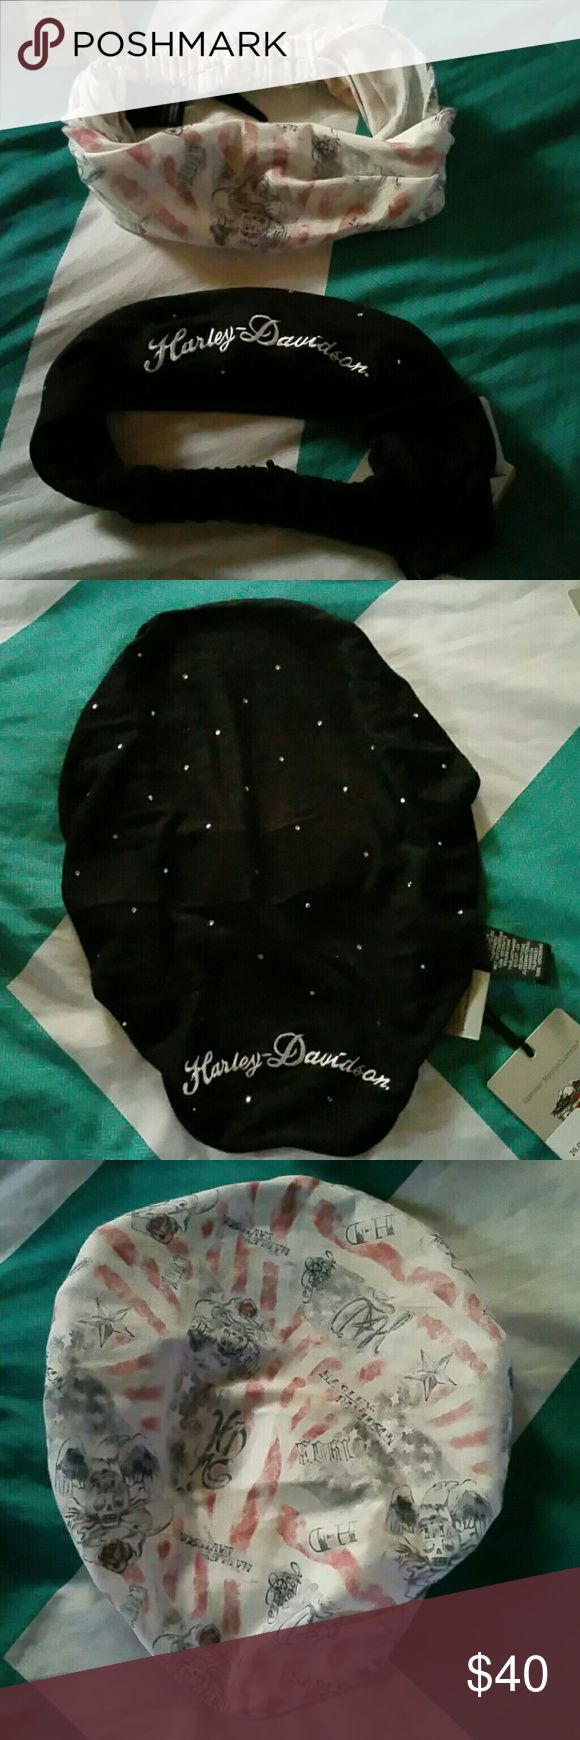 Harley Davidson headwraps 2 brand new witg tags never used harley davidson headwraps. One is black with rhinestones that says harley davidson. The other is red white and blue says harley davidson also with skulls. Both are one size fits all. Can be worn as a headband or bandana style. Harley-Davidson Accessories Hair Accessories